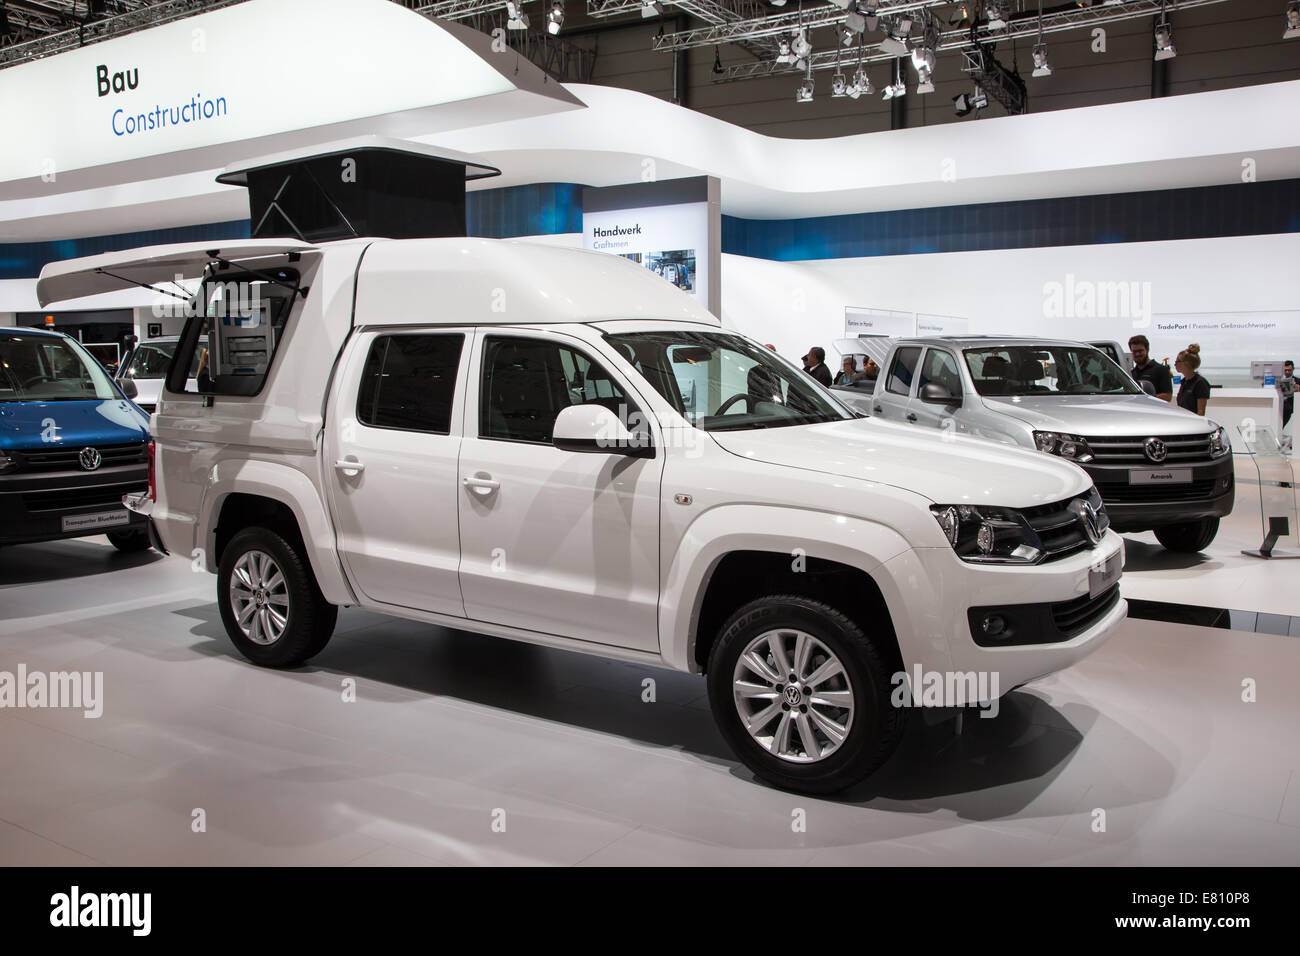 New VW Amarok Pickup truck at the 65th IAA Commercial Vehicles fair 2014 in Hannover, Germany - Stock Image